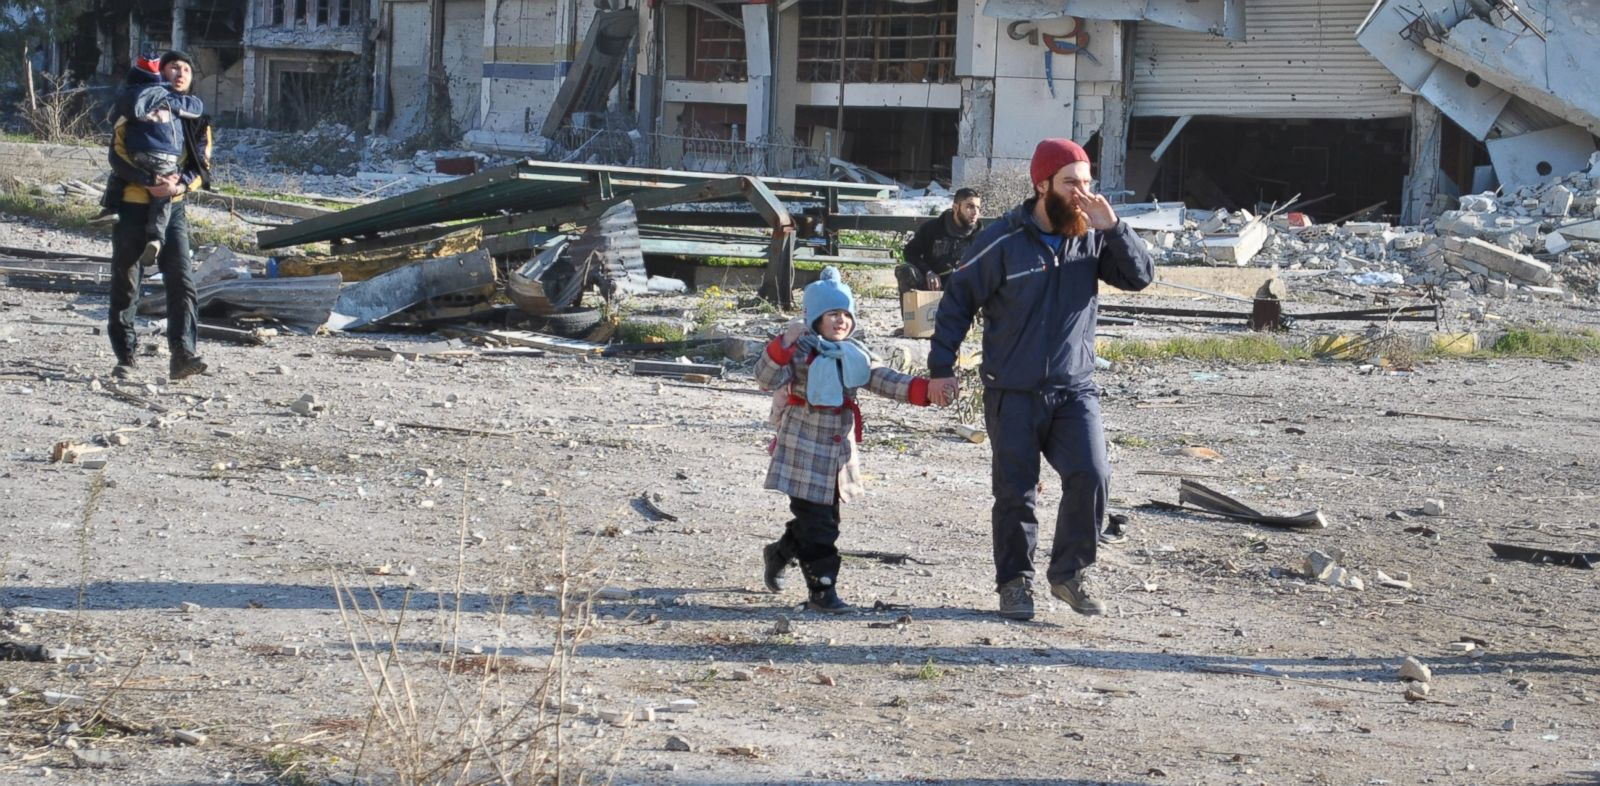 PHOTO: Civilians walk towards an evacuation point in the besieged Syrian city of Homs ahead of an evacuation operation led by the UN, on Feb. 9, 2014.